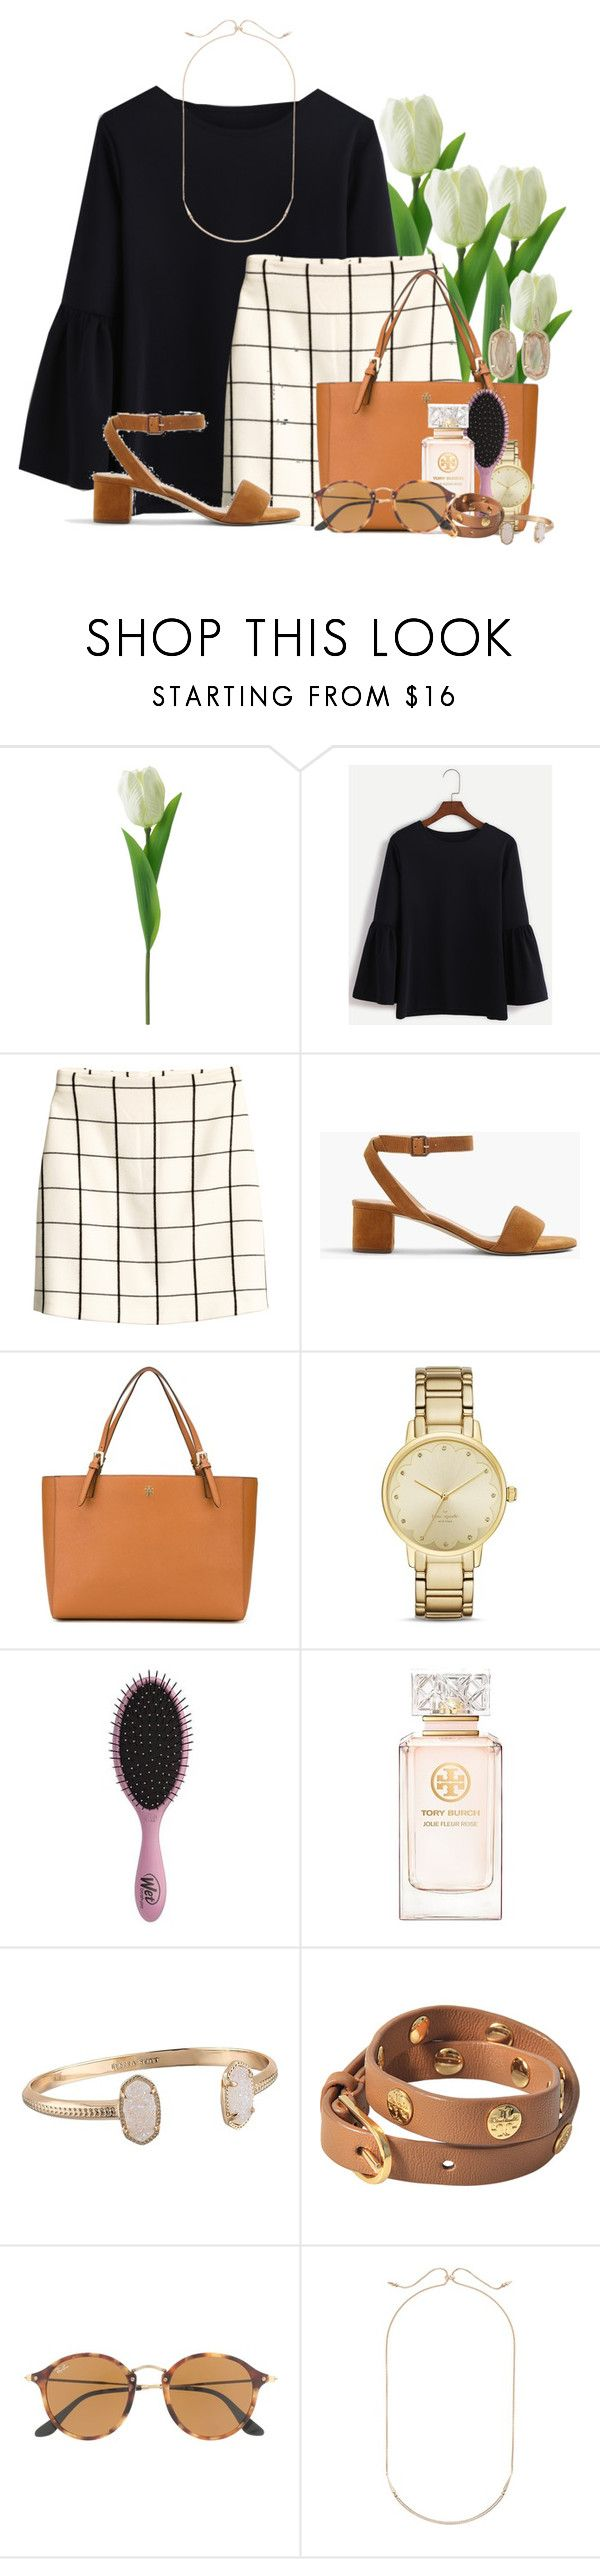 """""""~classy and sassy~"""" by flroasburn ❤ liked on Polyvore featuring H&M, J.Crew, Tory Burch, Kate Spade, Topshop, Kendra Scott and Ray-Ban"""